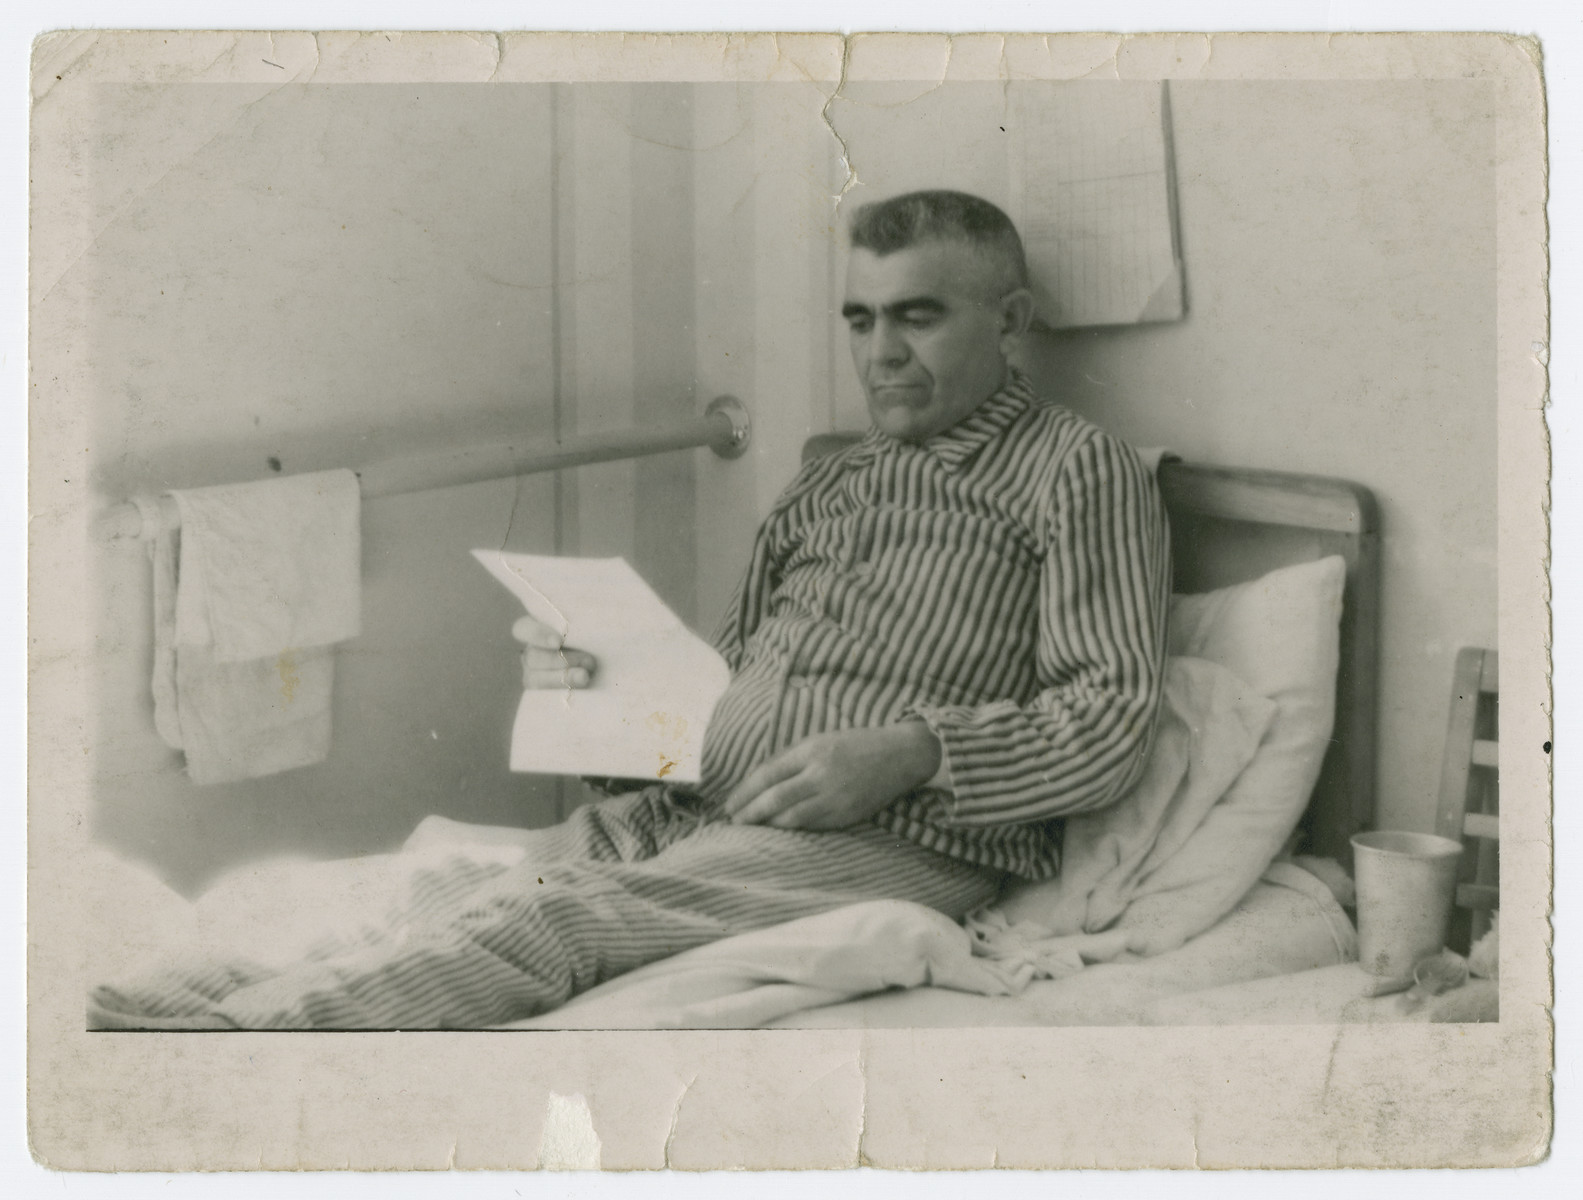 Jozef Rakowski recuperates in his hospital bed following liberation from Mauthausen.